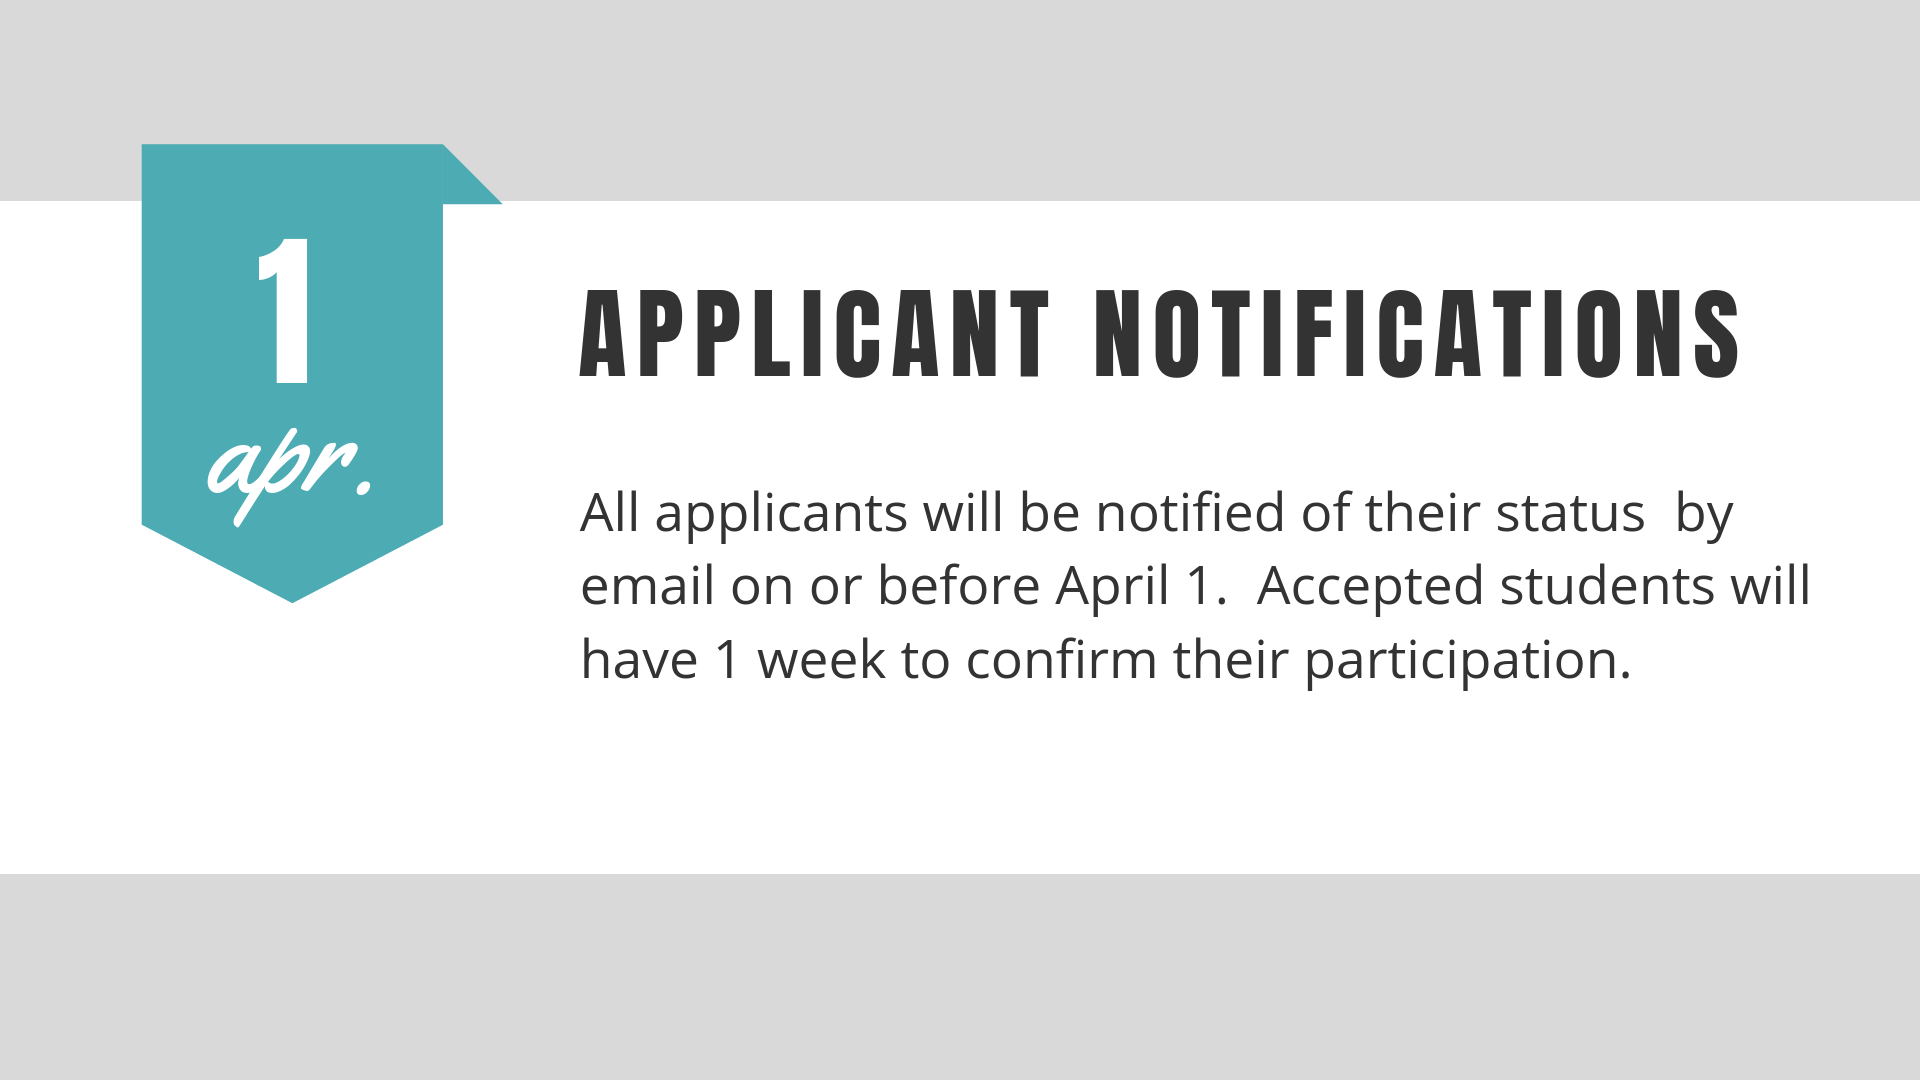 All non-priority applicants will be notified on or before April 1